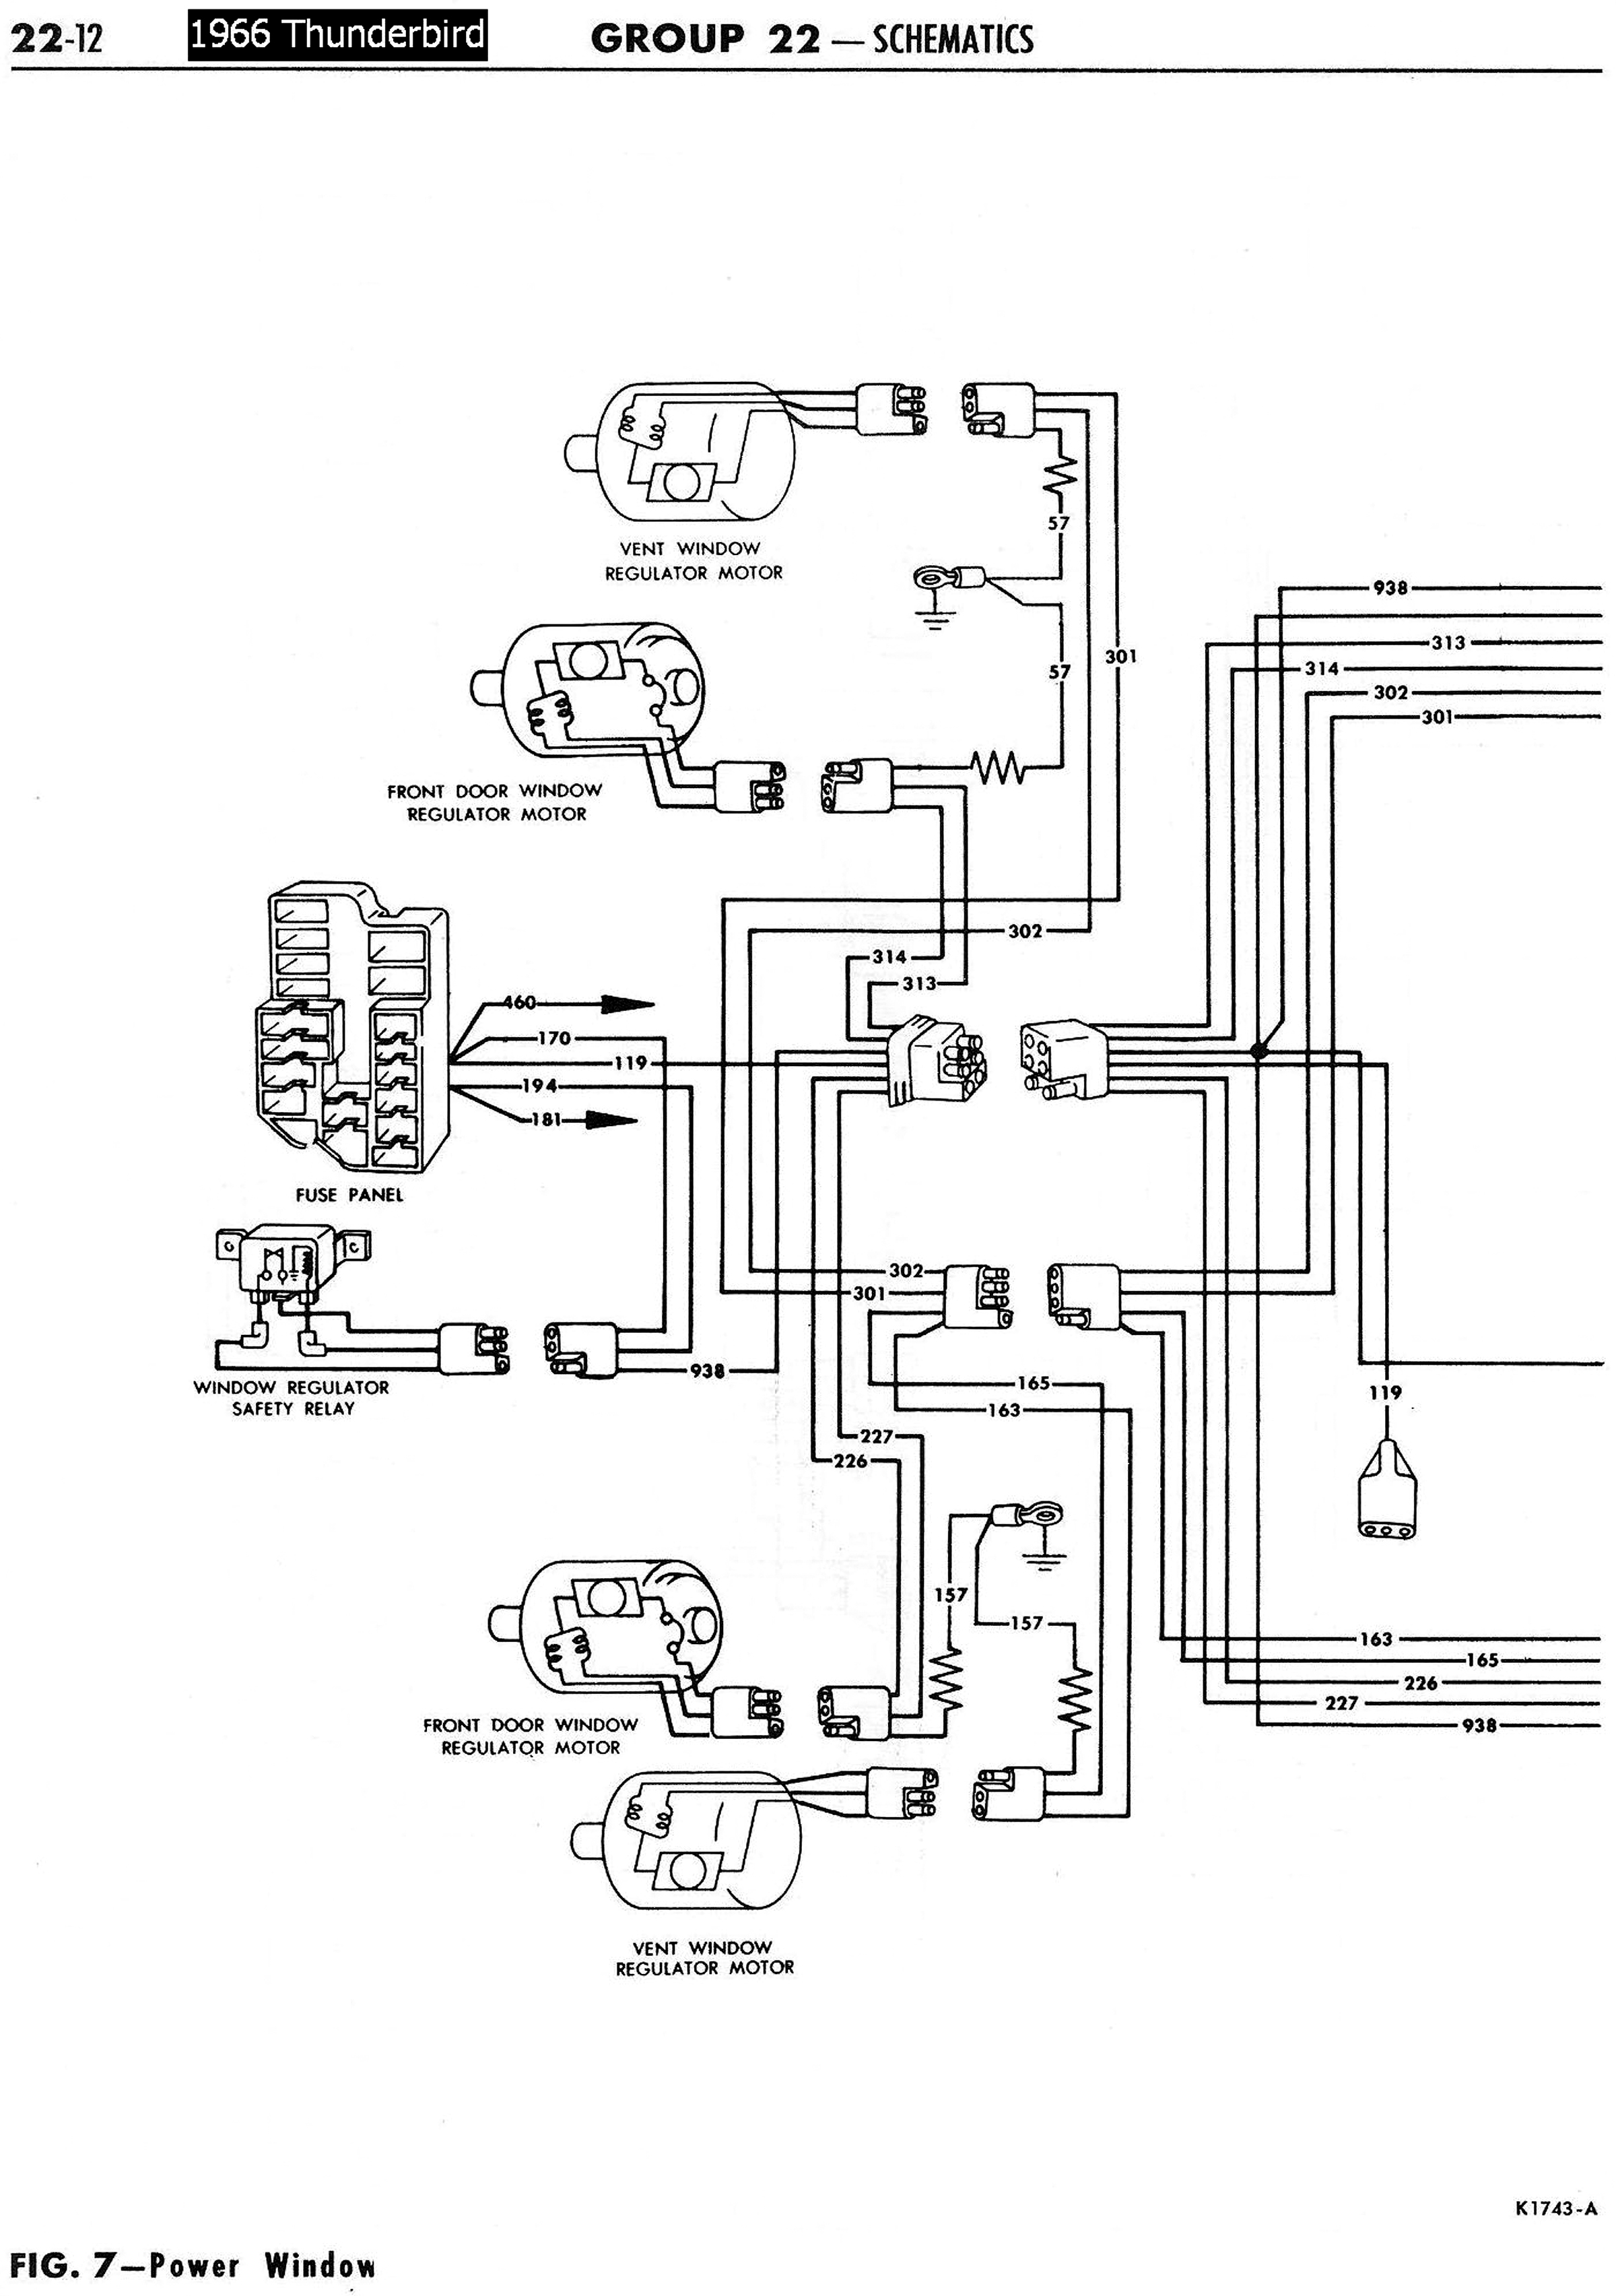 1964 Thunderbird Wiring Diagram : 31 Wiring Diagram Images